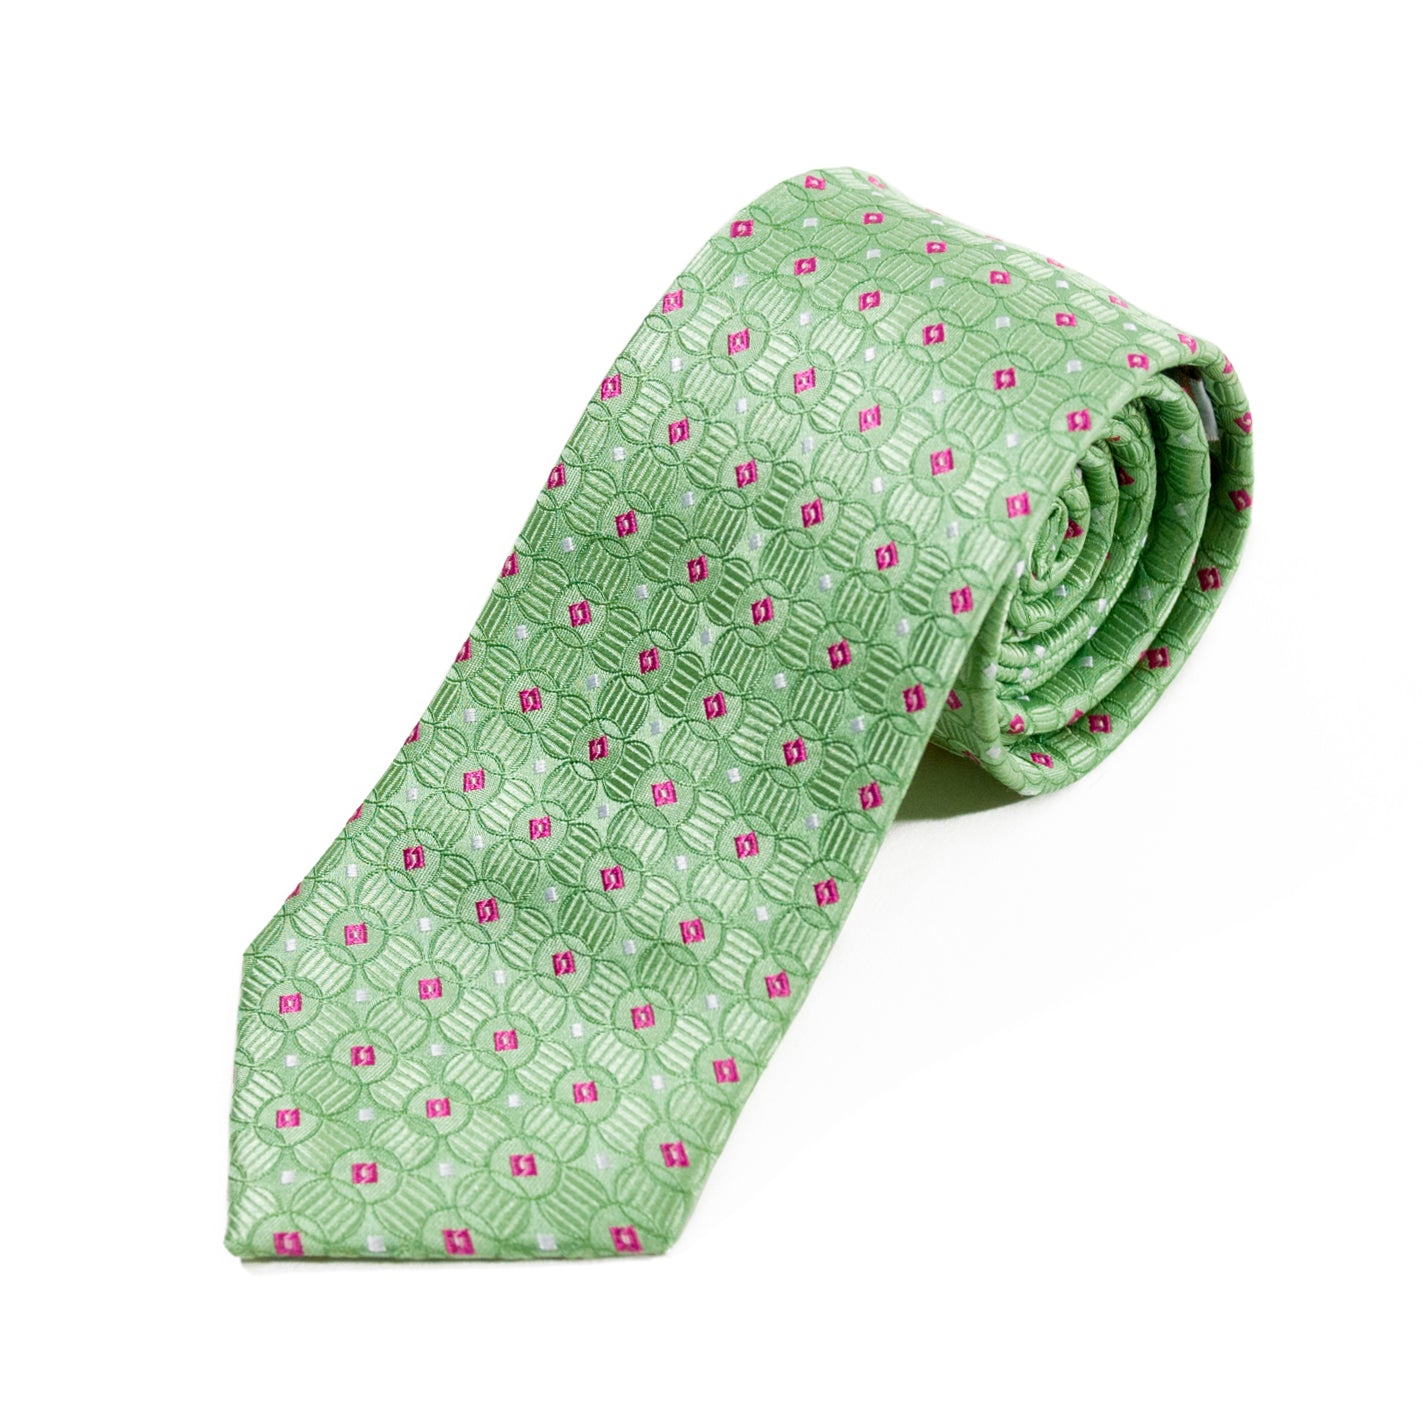 Ateseta Light Green Geometric Tie